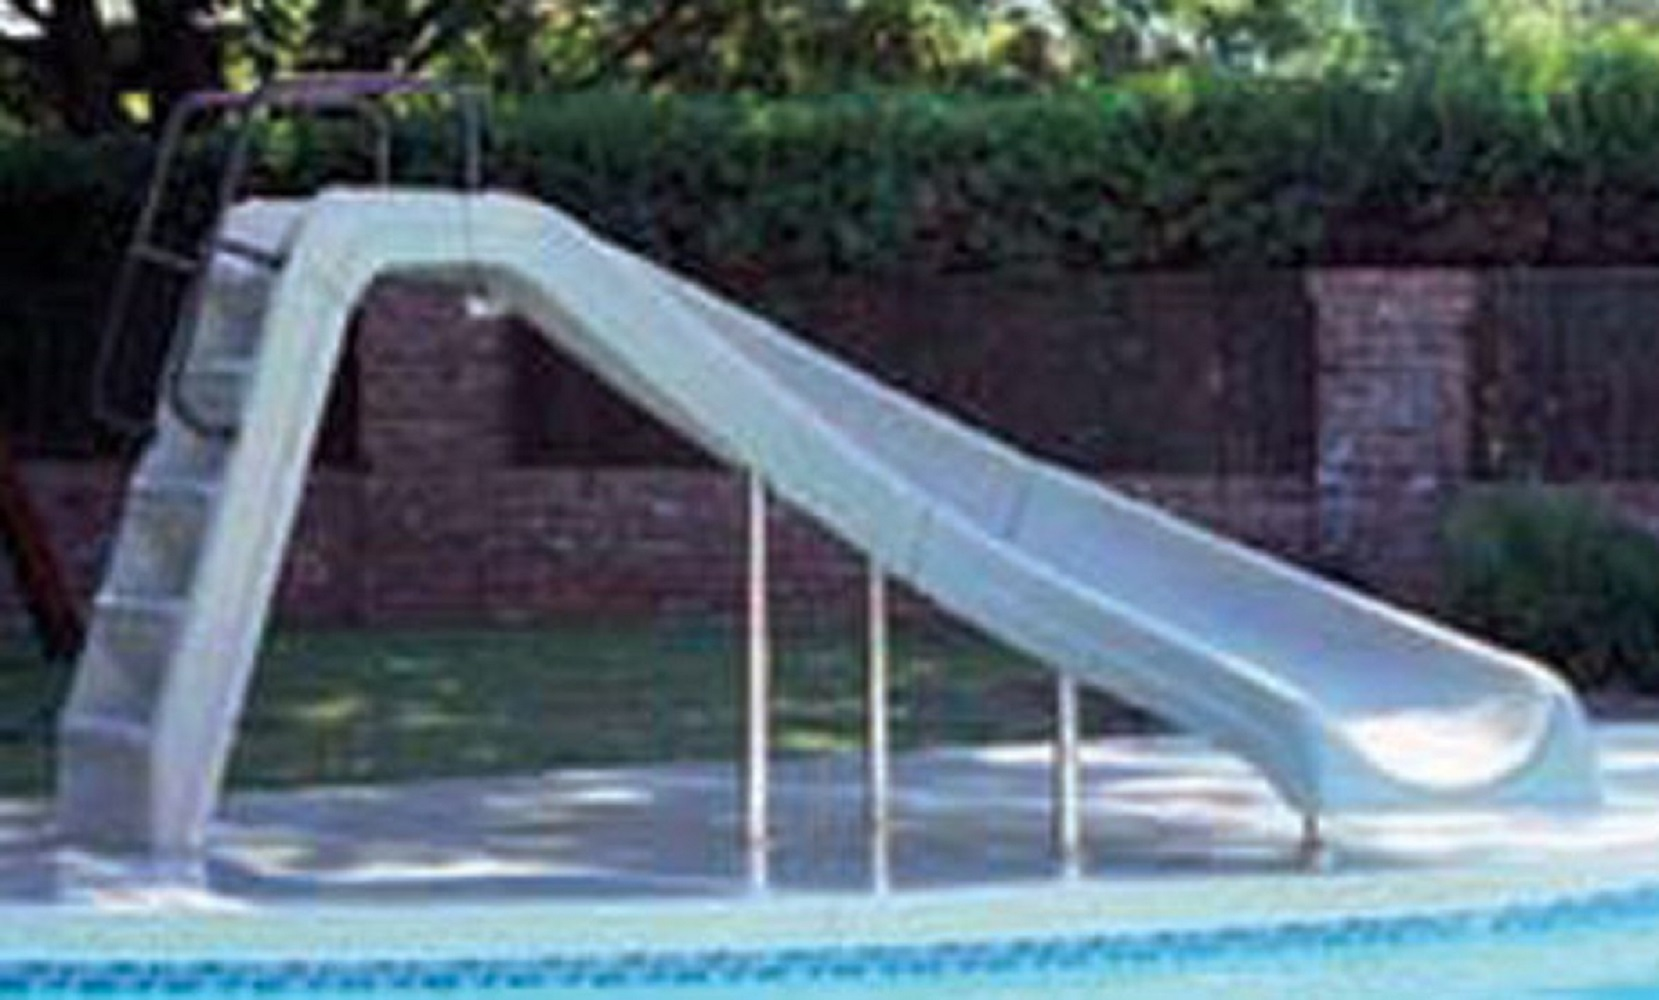 Inter-Fab WWSCLSS Complete Waterslide White WWS-CL-SS by Inter-Fab